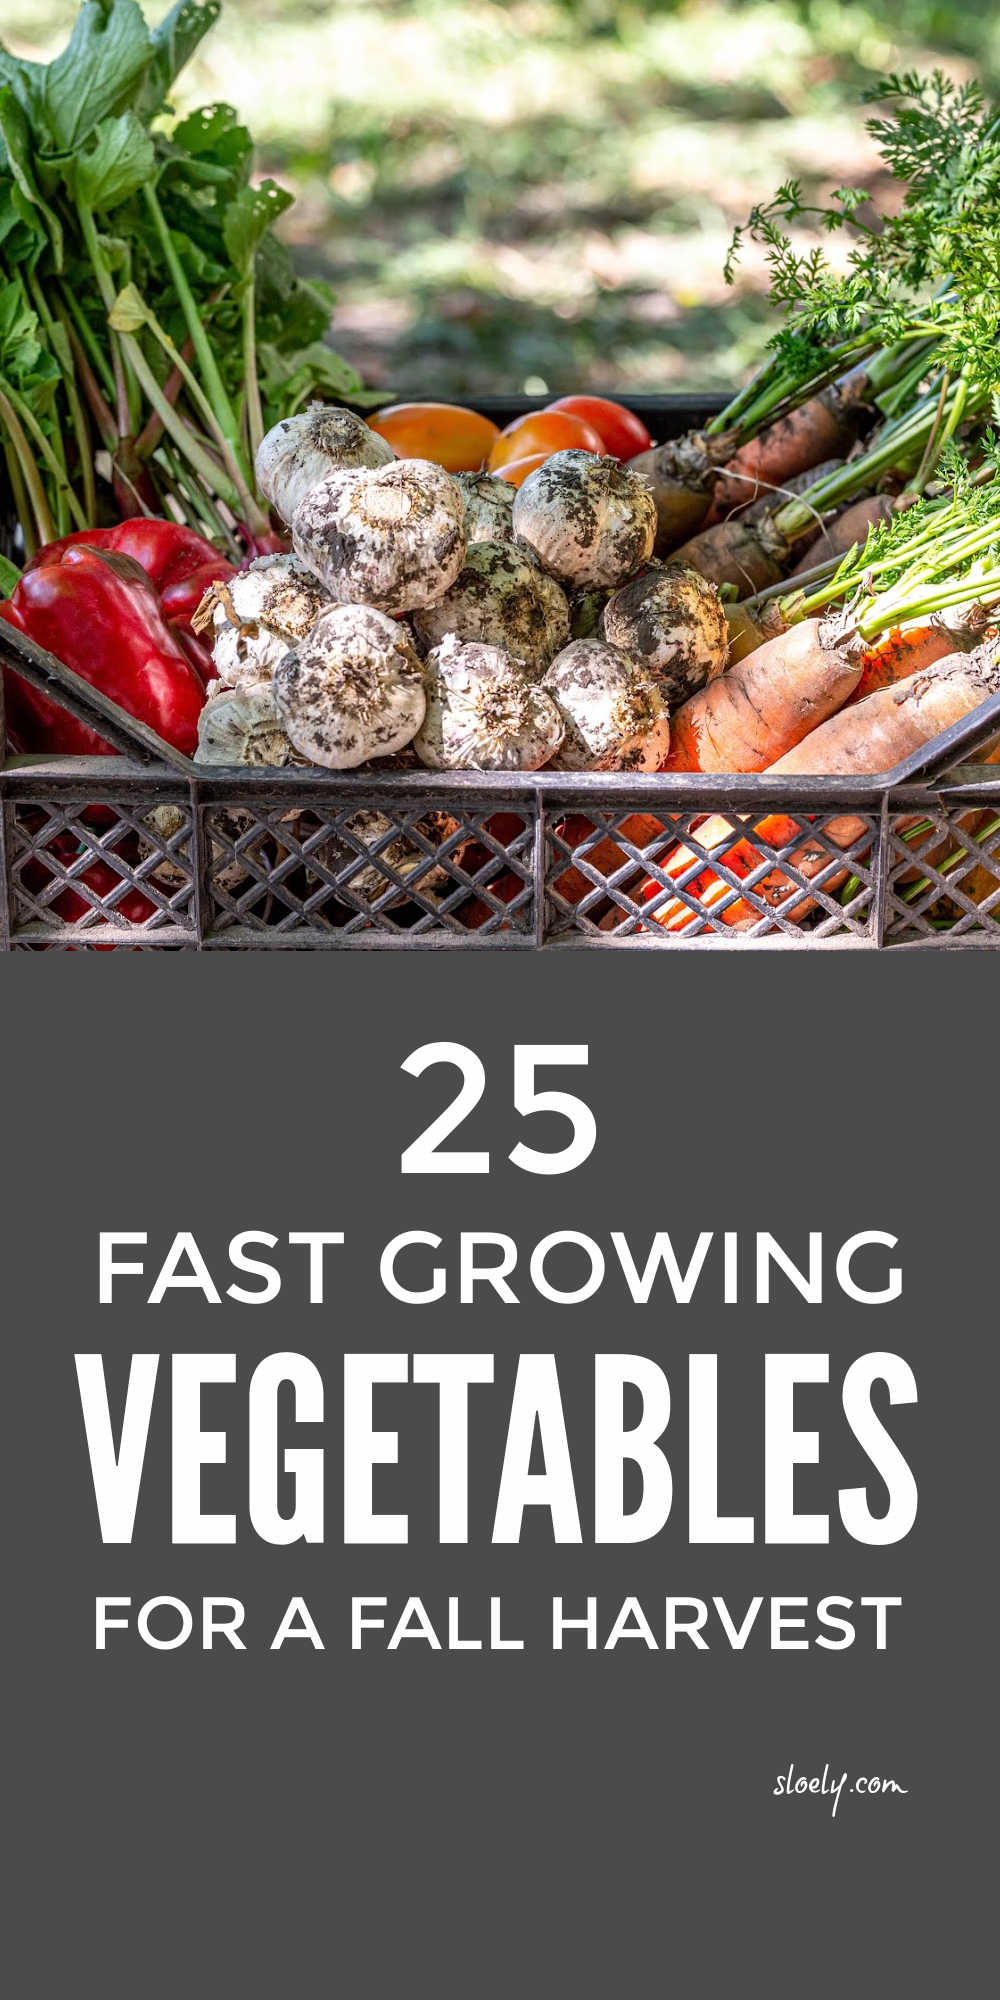 Fast Growing Vegetables For A Fall Harvest